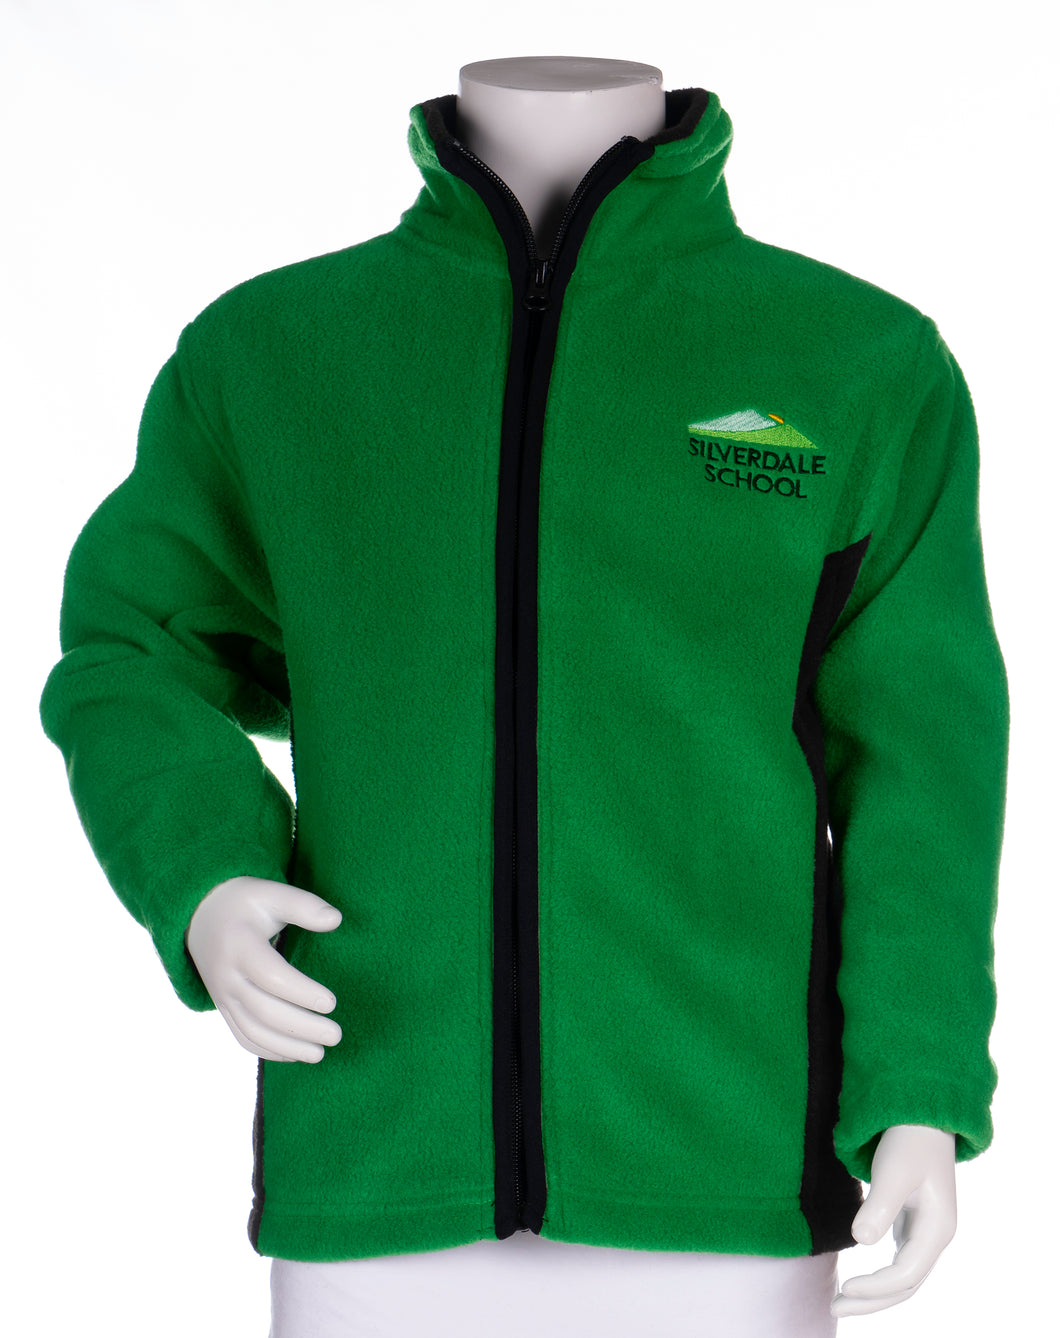 Silverdale School - Polar Fleece Jumper